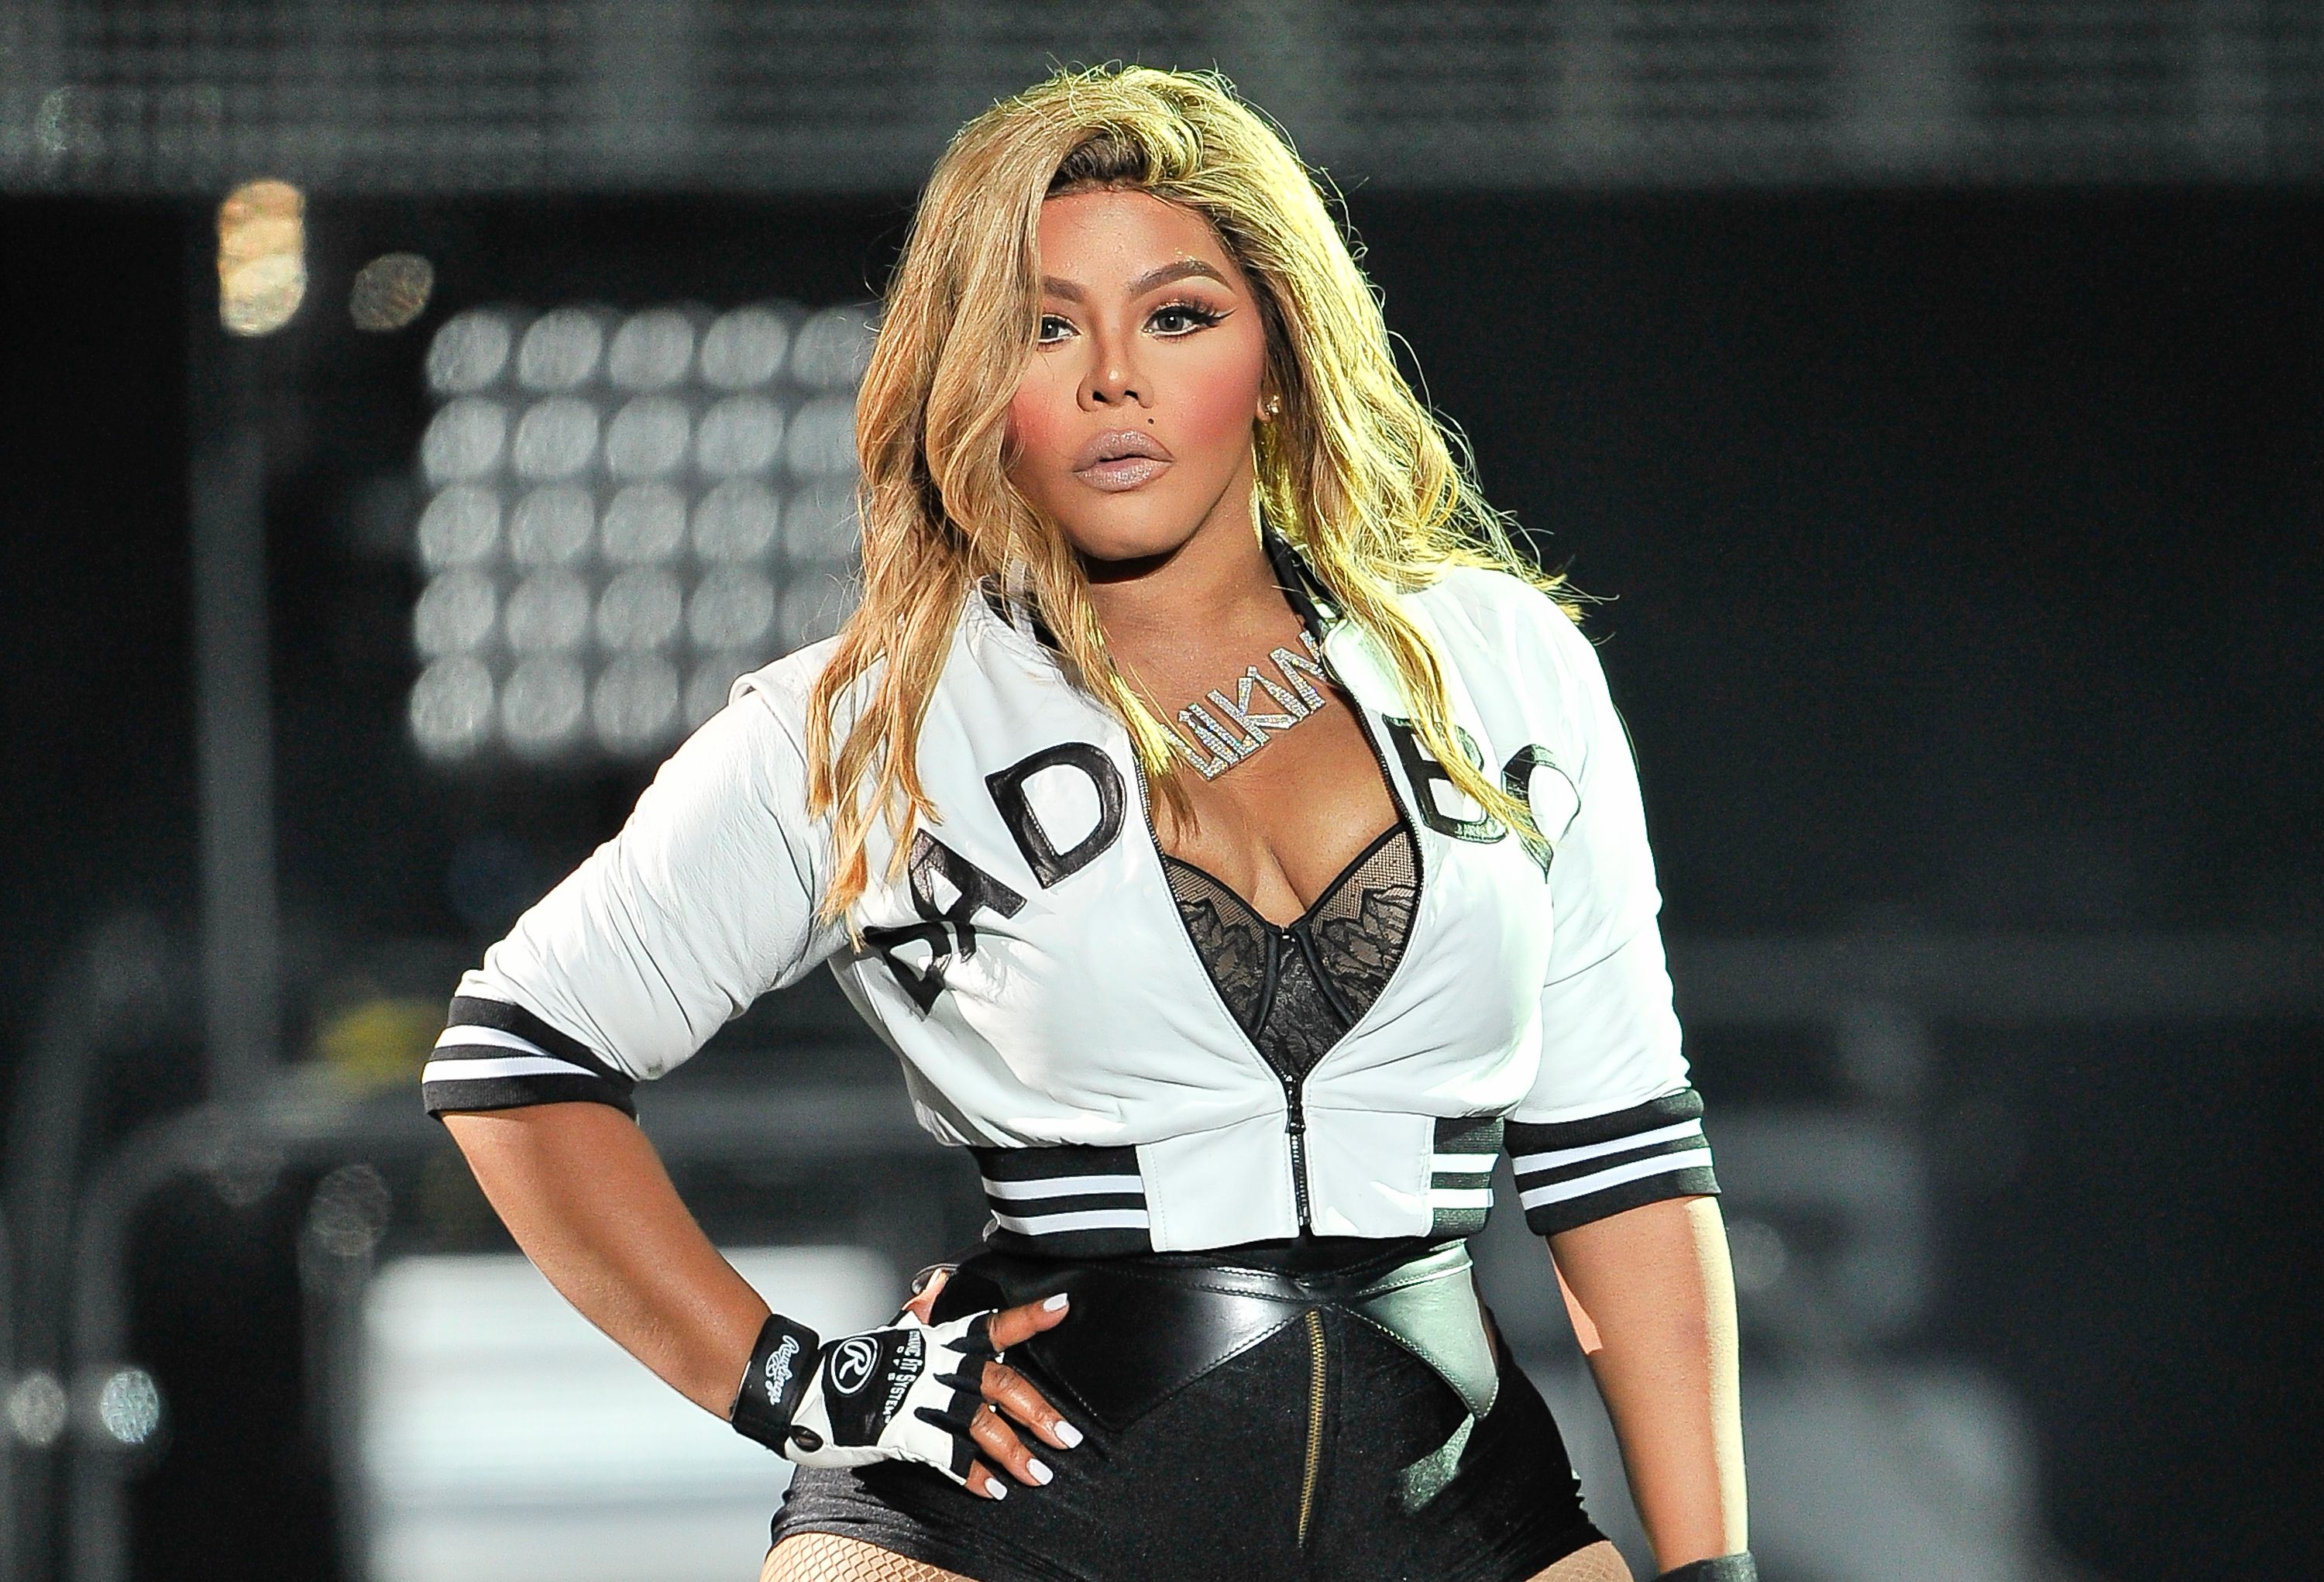 Lil' Kim at the Bad Boy Family Reunion Tour in September 2016 in Oakland, California | Source: Getty Images